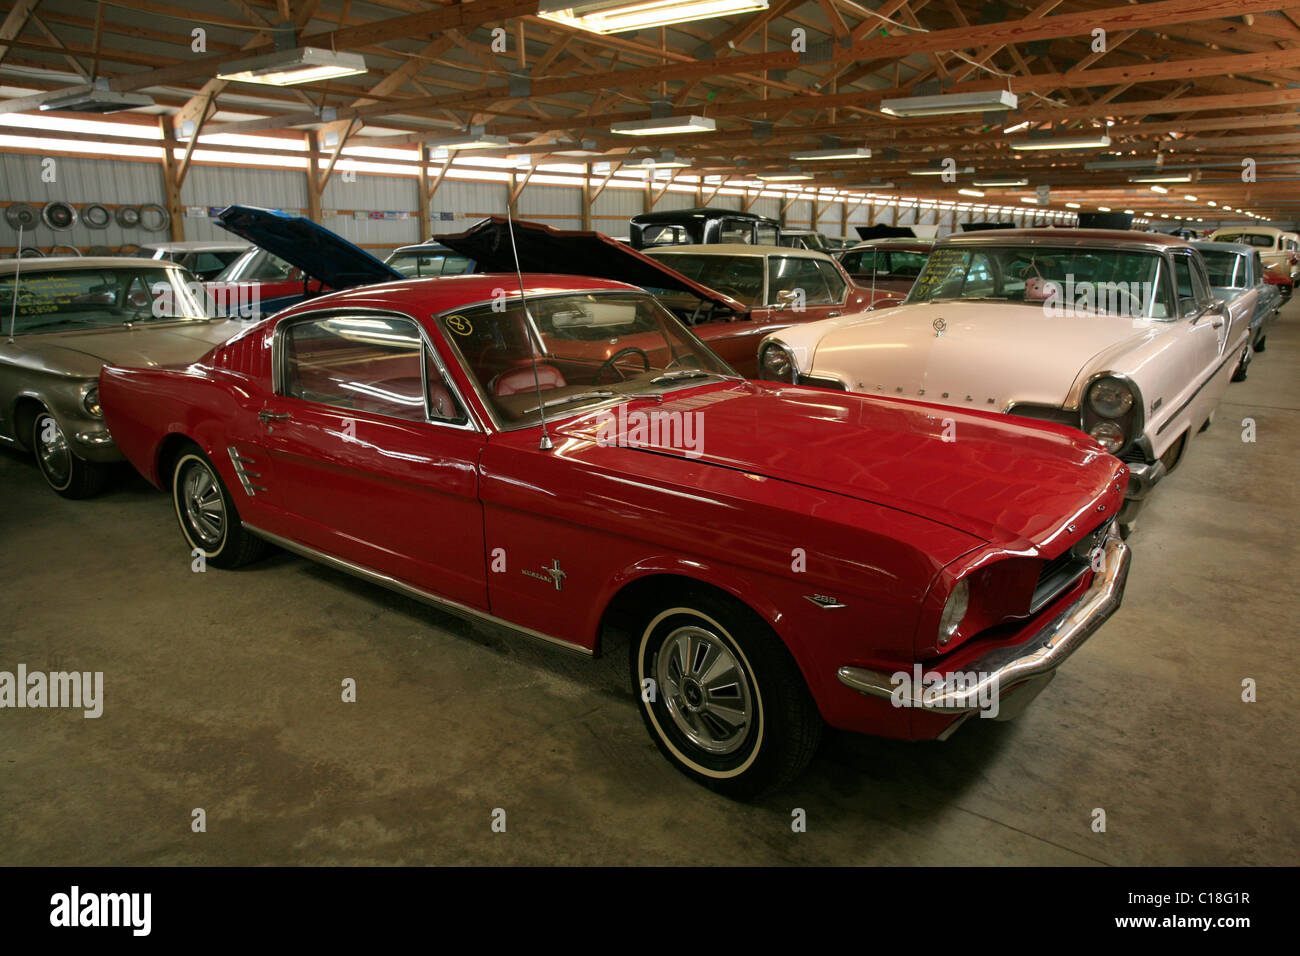 1965 v8 ford mustang gt fastback in the vintage car show country classic cars on the